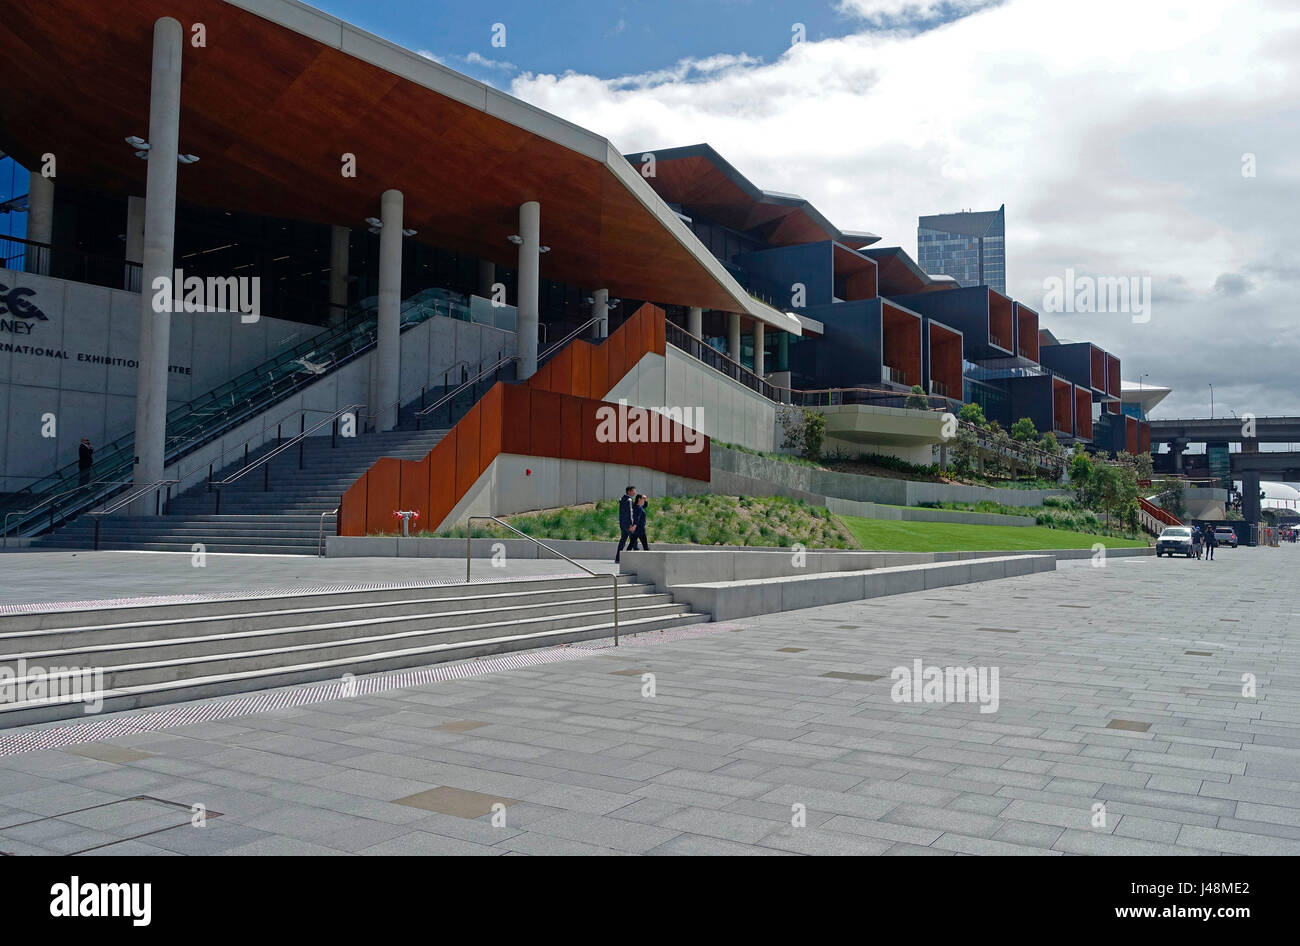 The ICC Sydney Exhibition Centre at The International Convention Centre Sydney (ICC Sydney), Australia - Stock Image